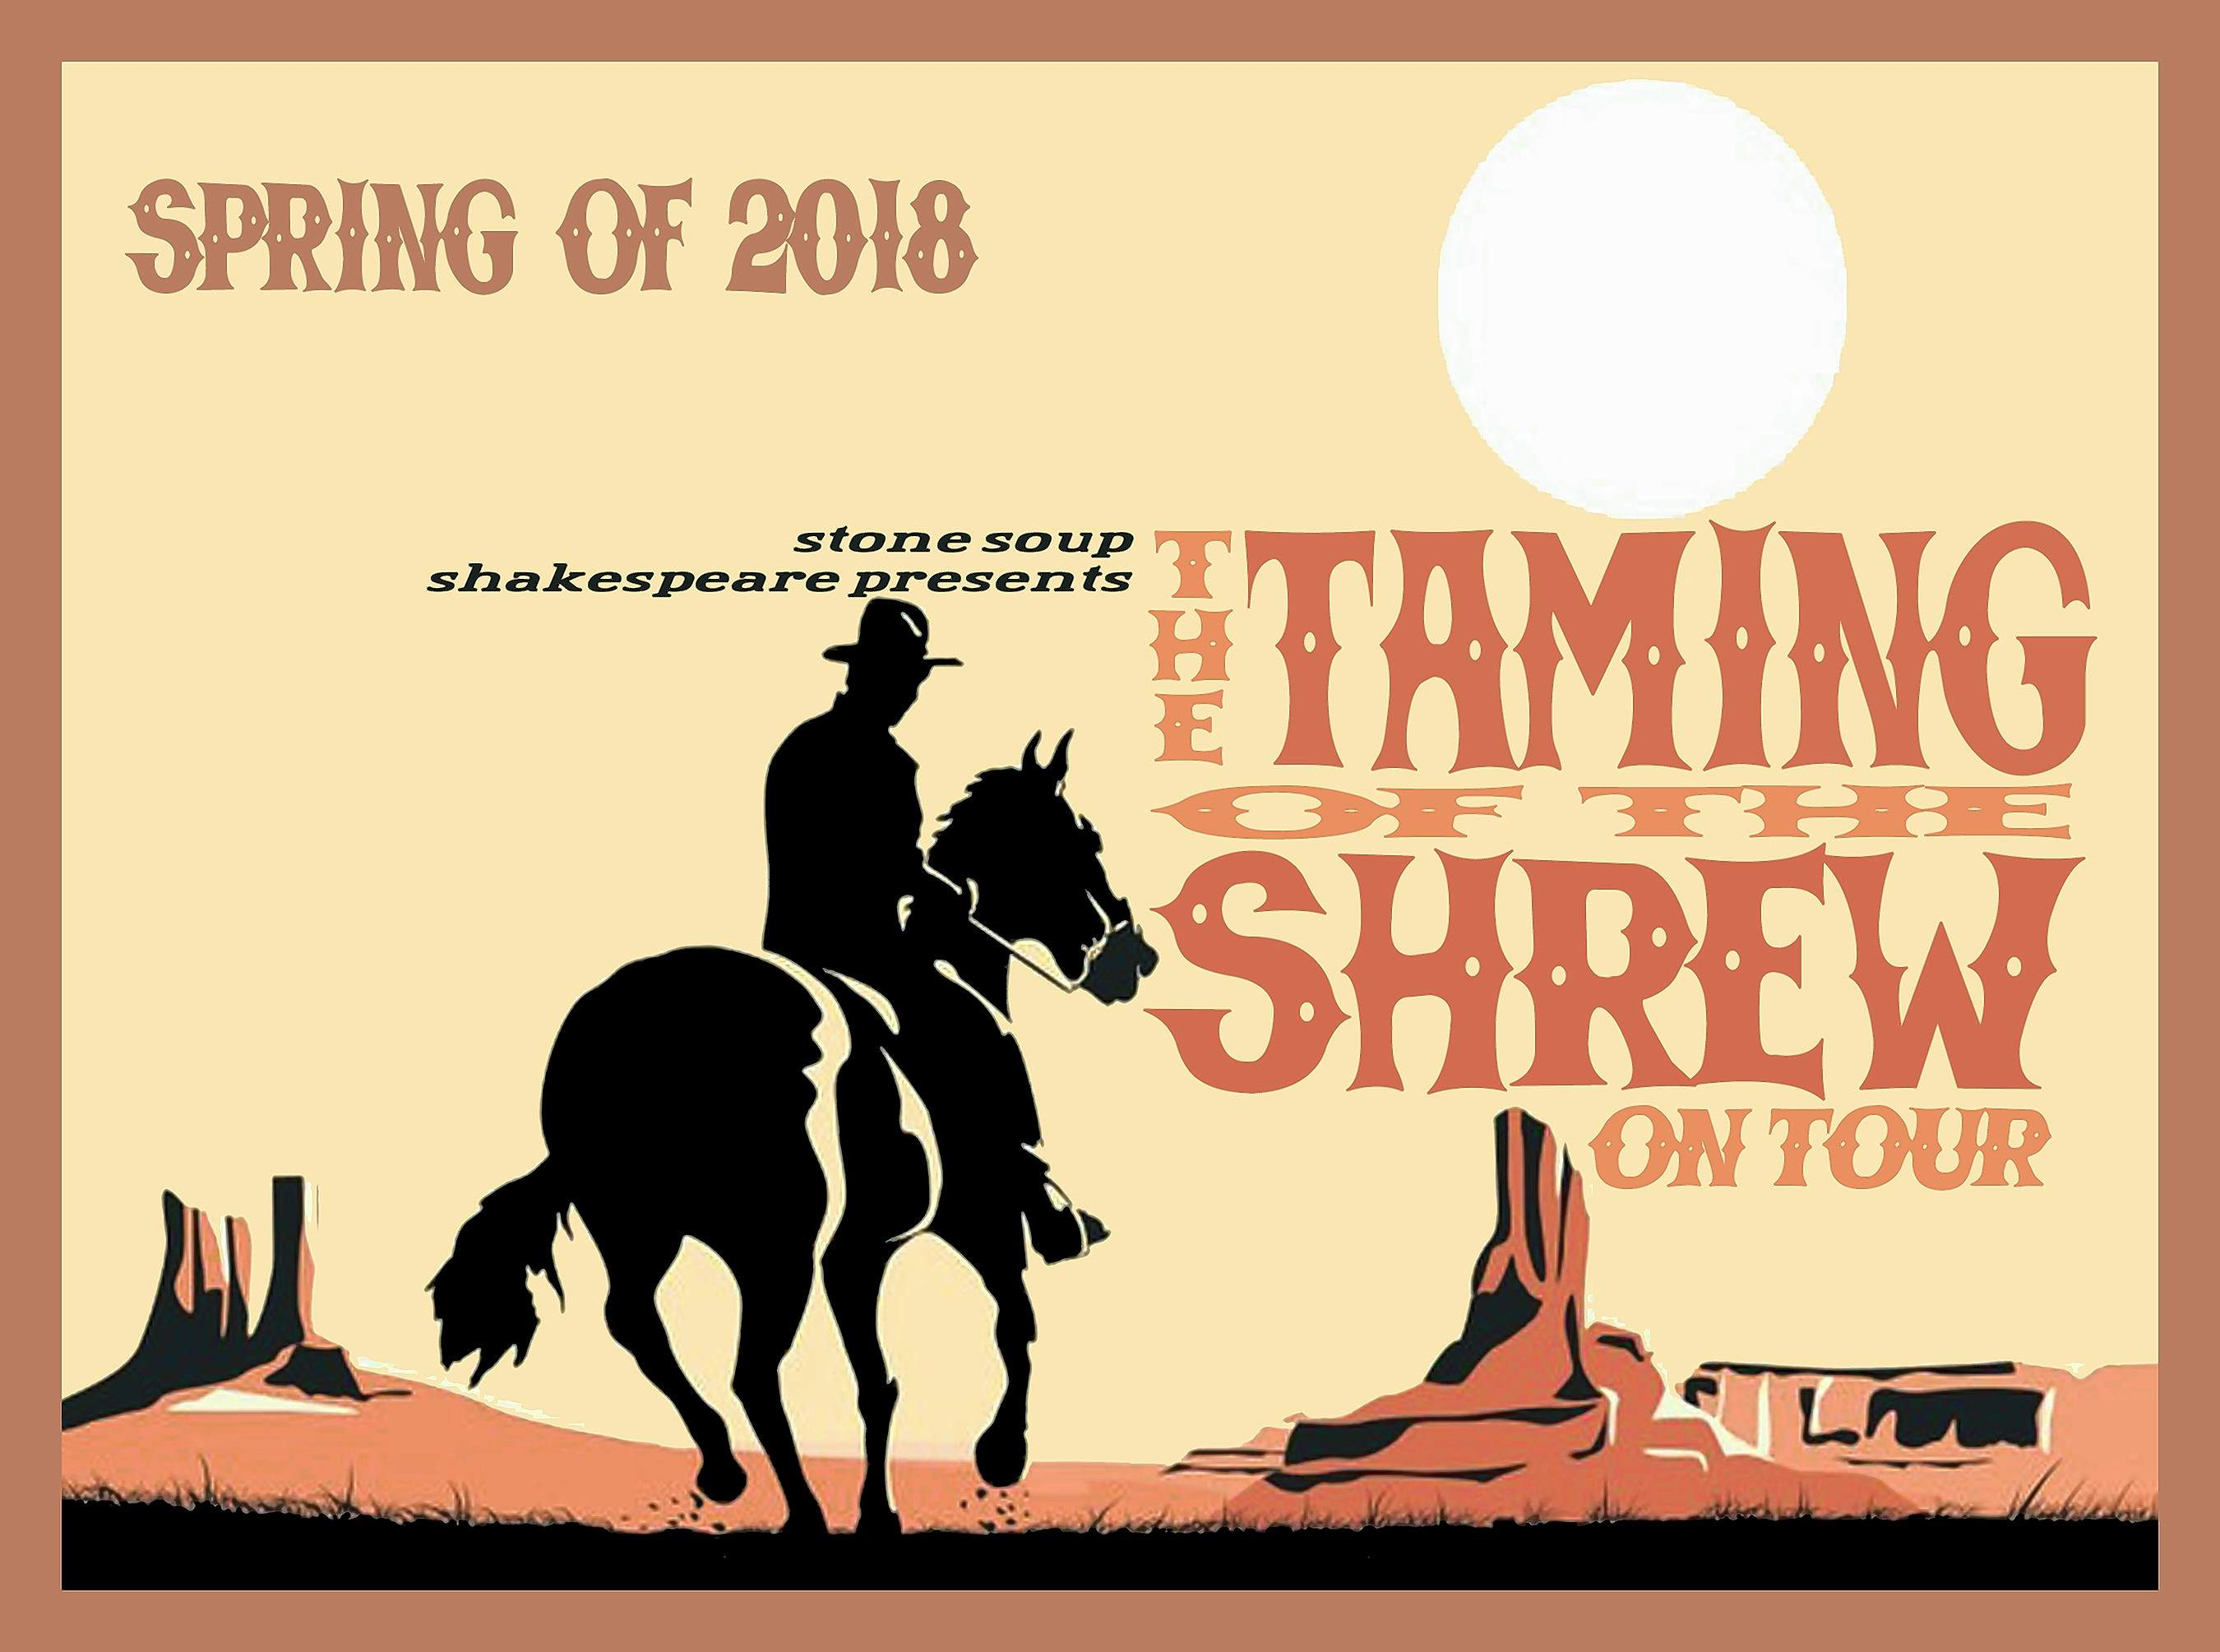 Taming of the Shrew poster.